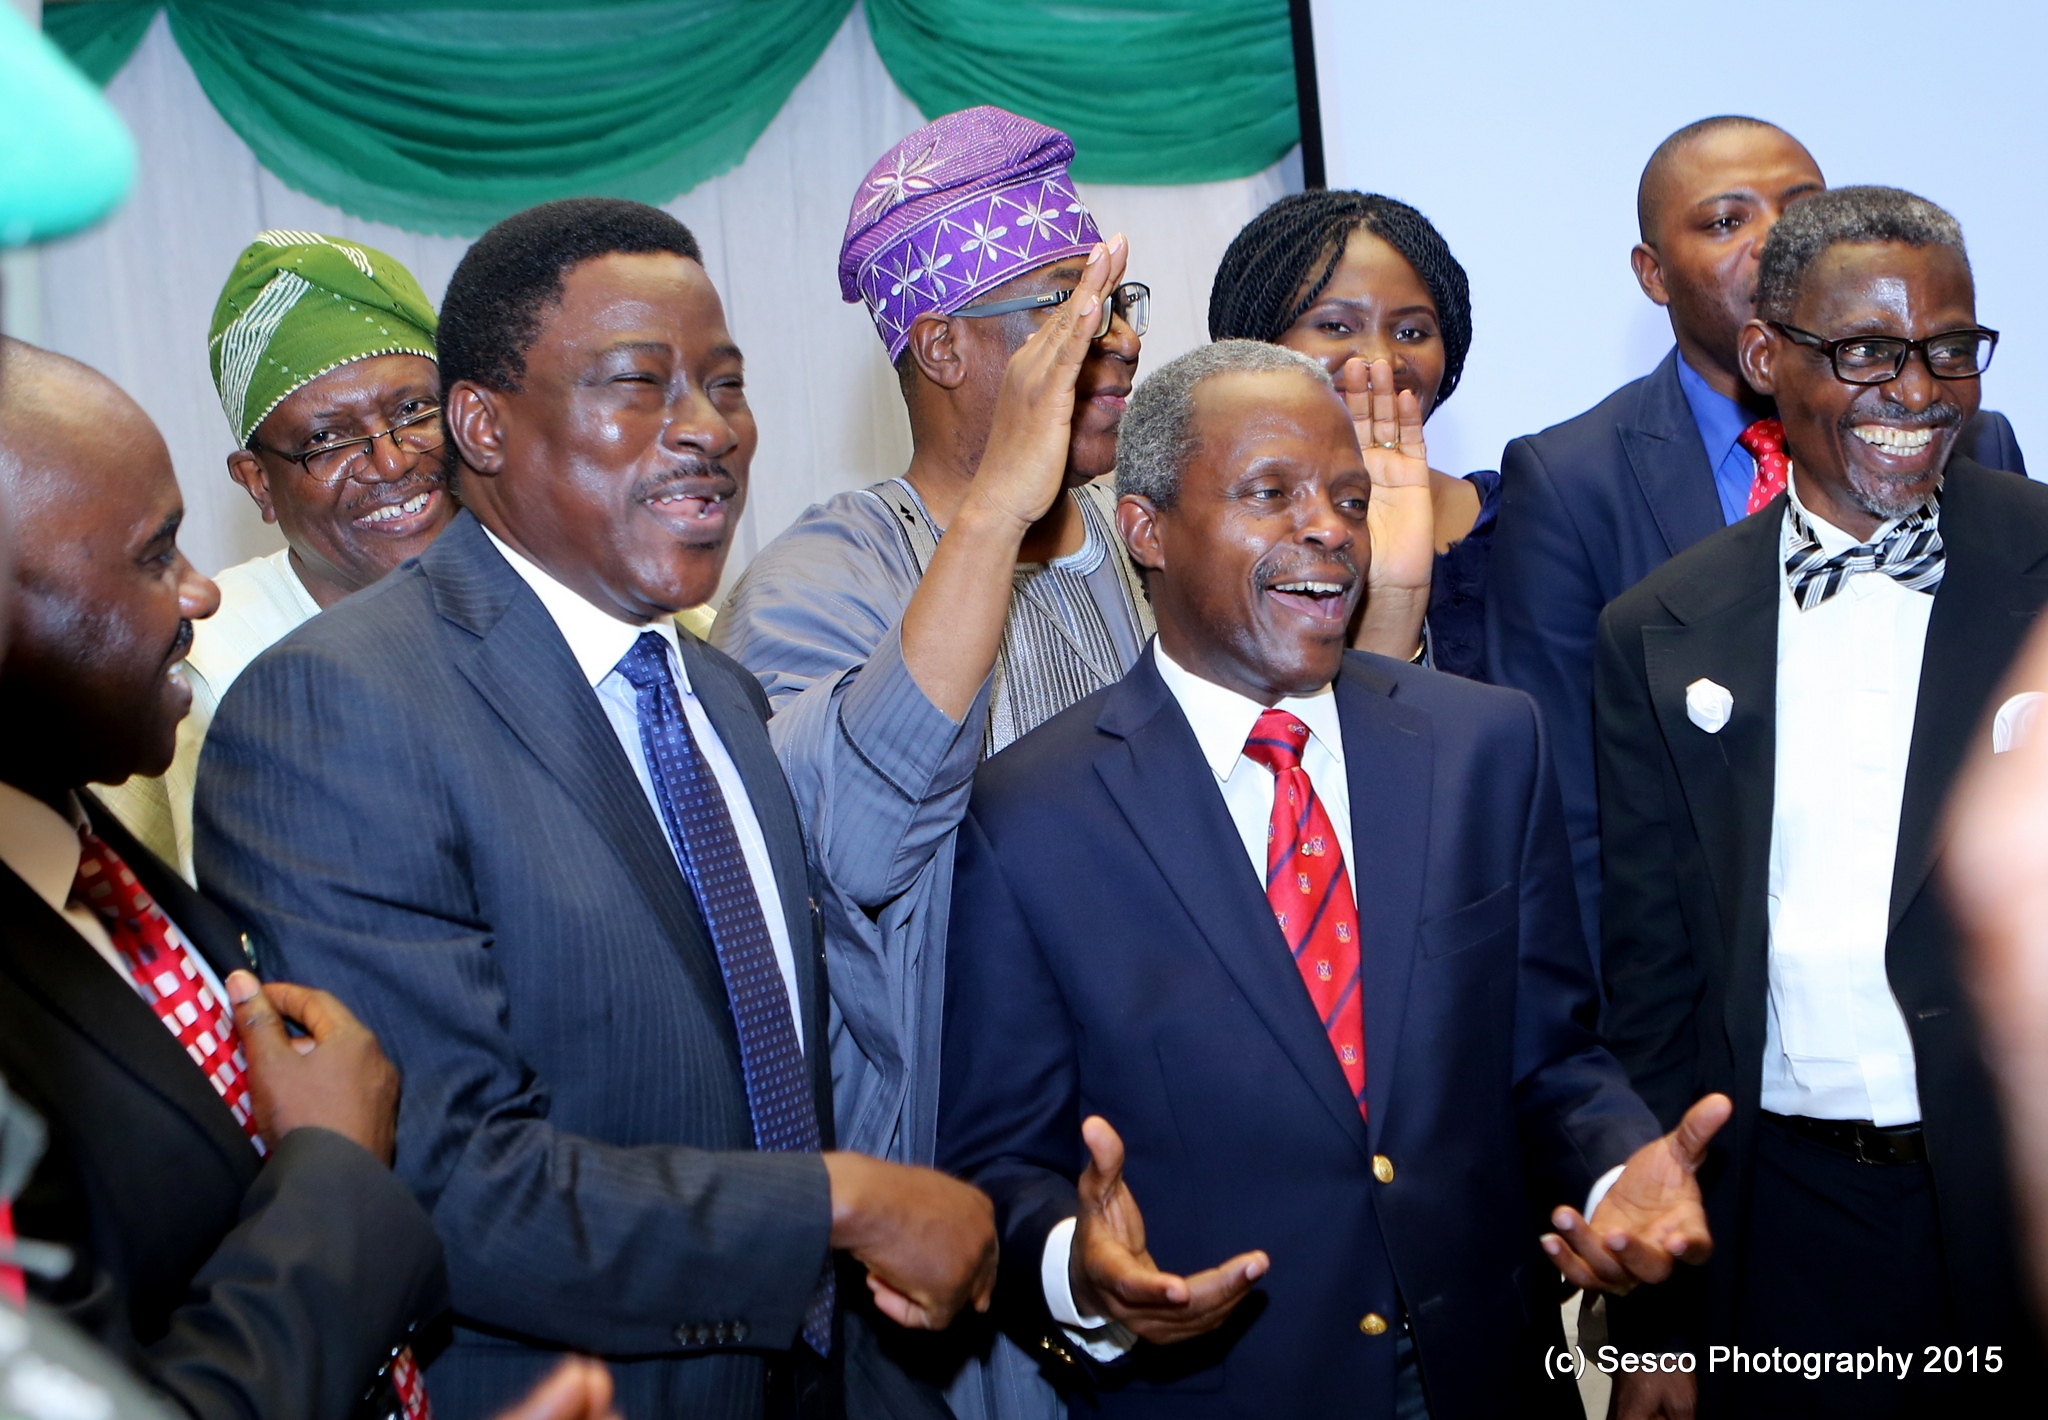 Faculty Of Law Unilag Honours Vice President Prof. Yemi Osinbajo, SAN On 14/08/2015